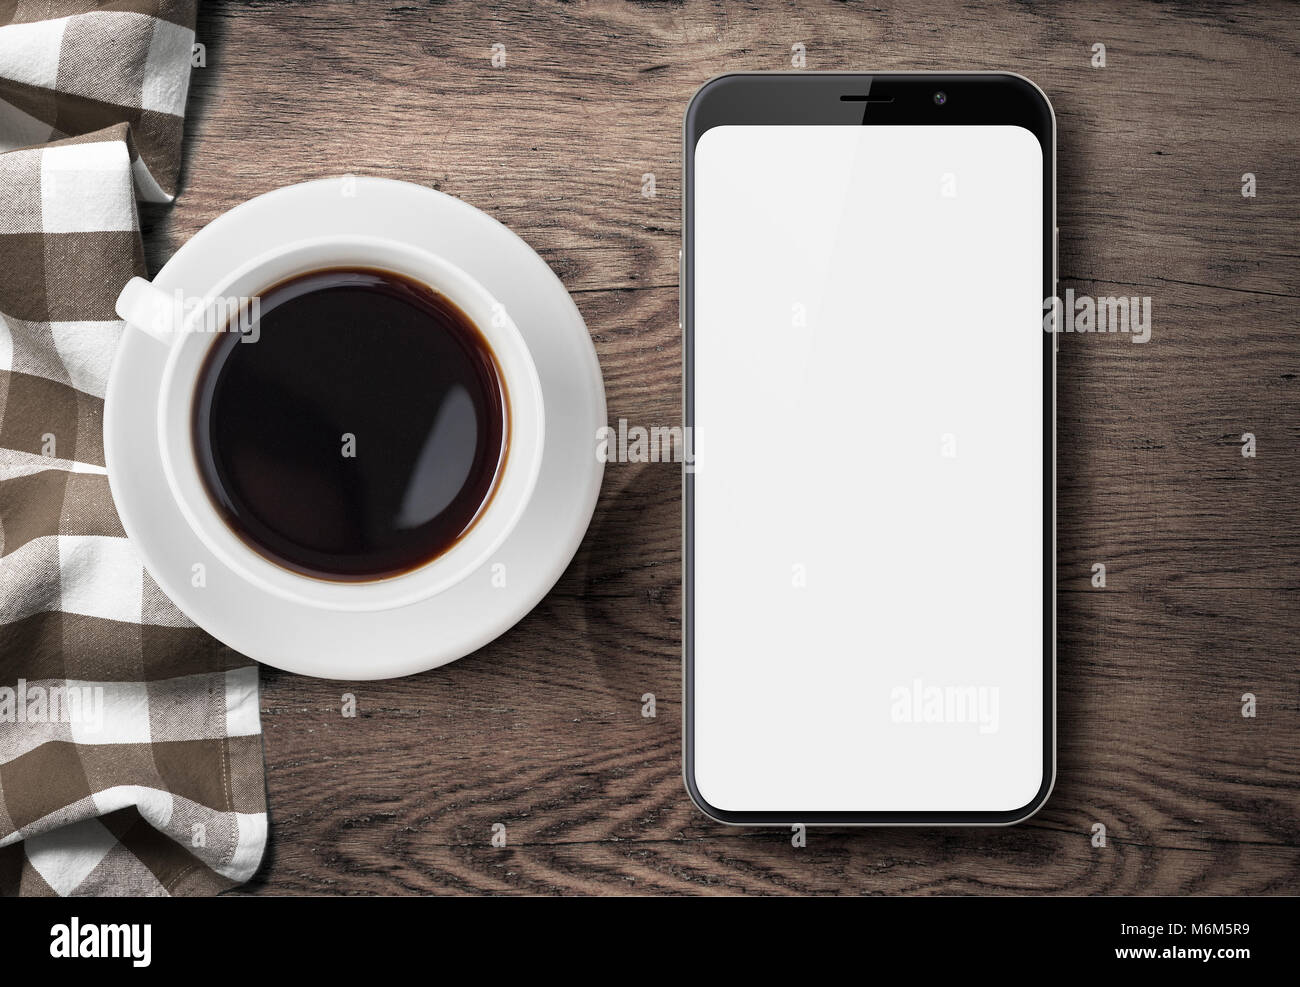 new smartphone top view on old wood table with cloth and coffee Stock Photo